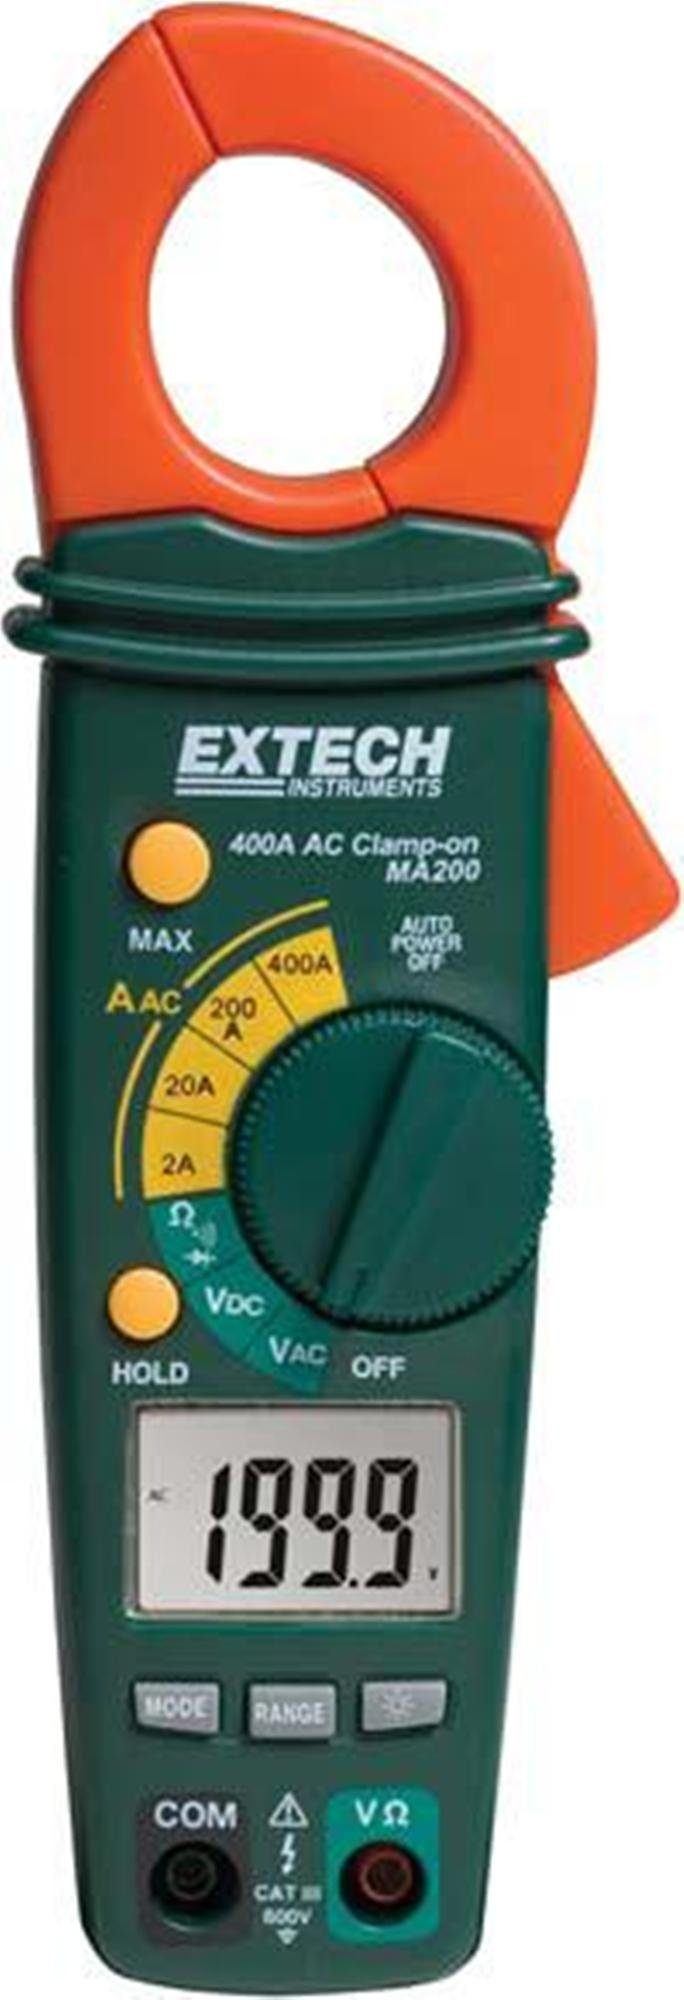 Extech MA200 Compact Clamp Meter